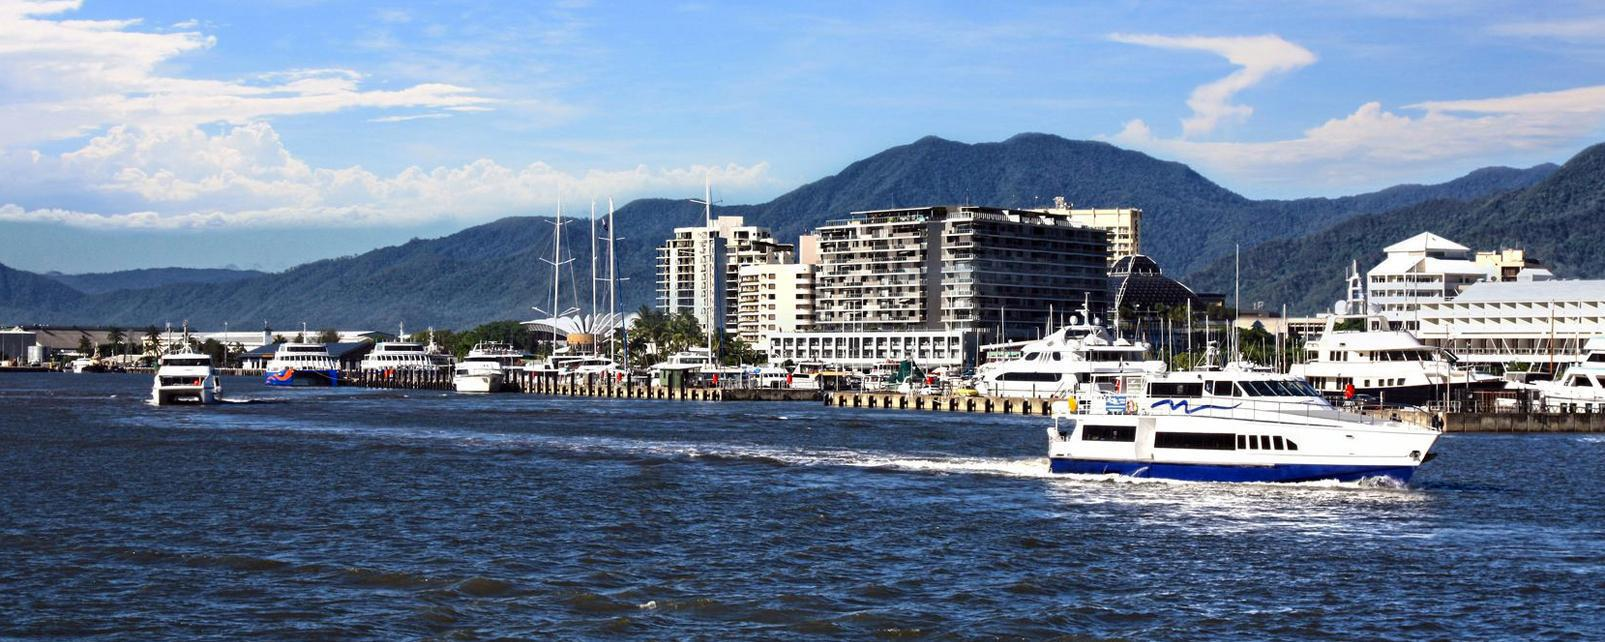 cairns weather - photo #14